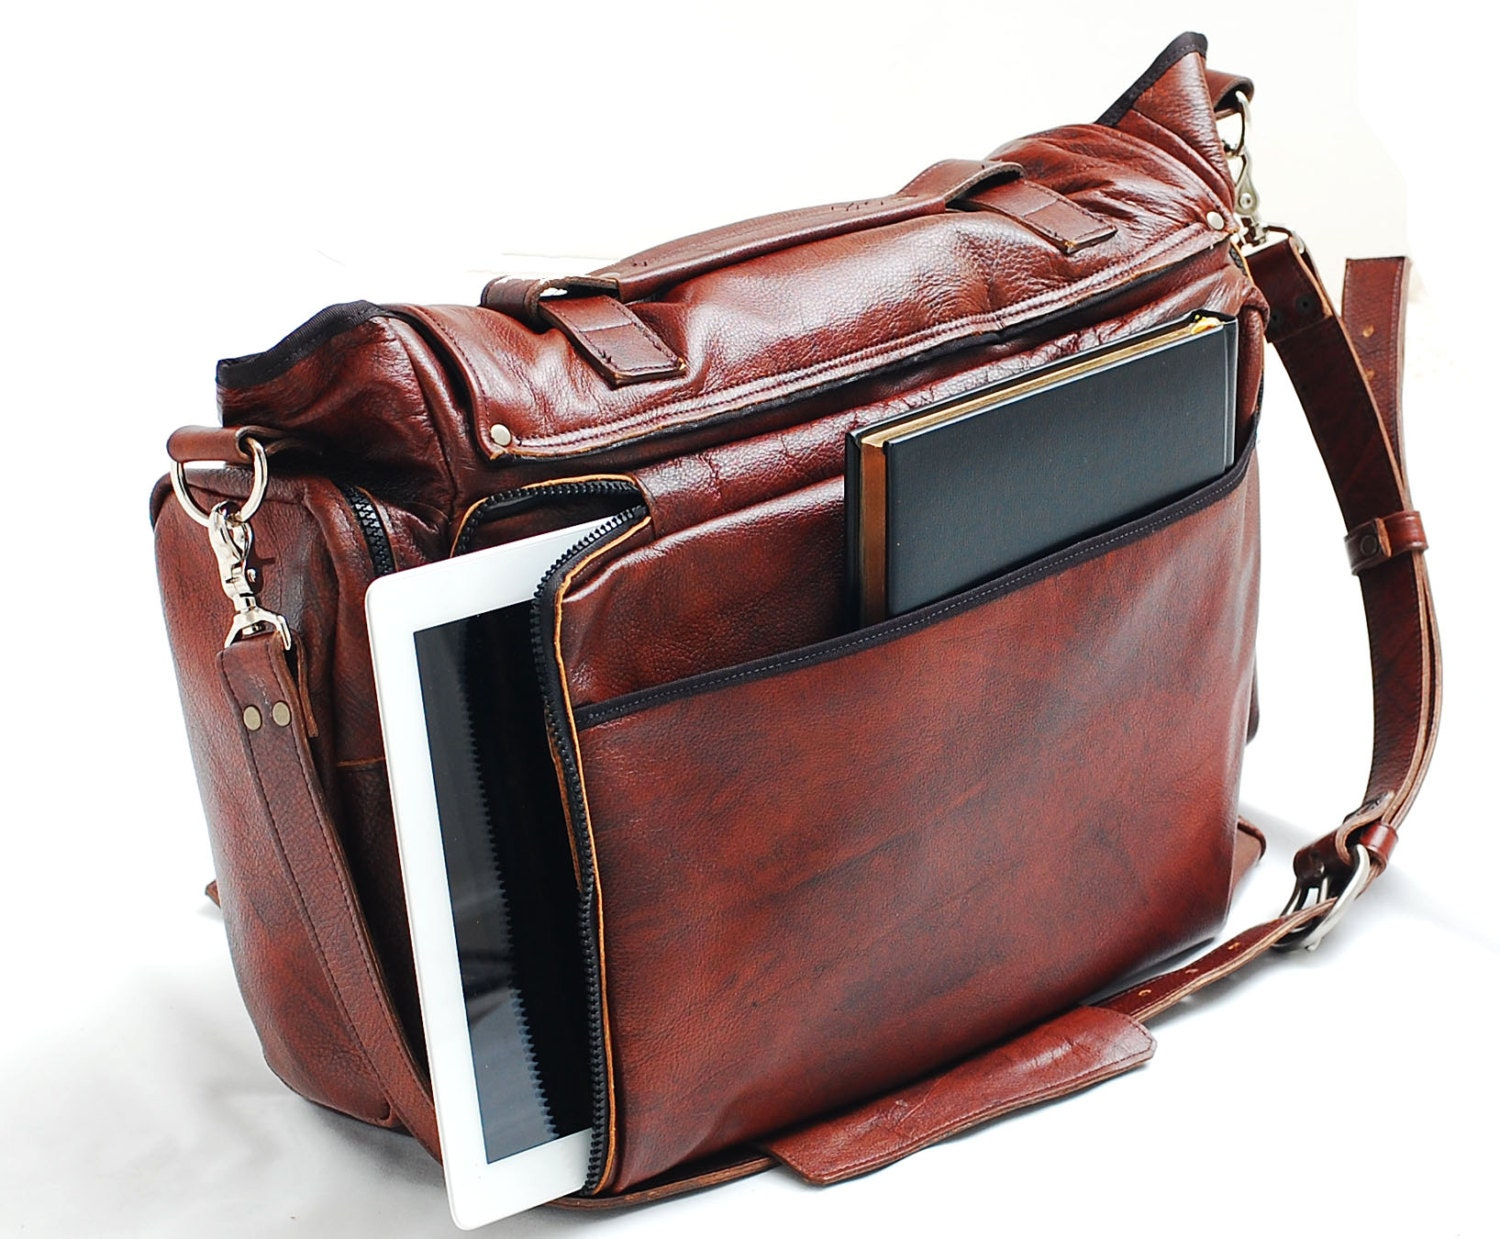 Custom Leather Messenger Bag 22 Inch Leather Bag Cross Body